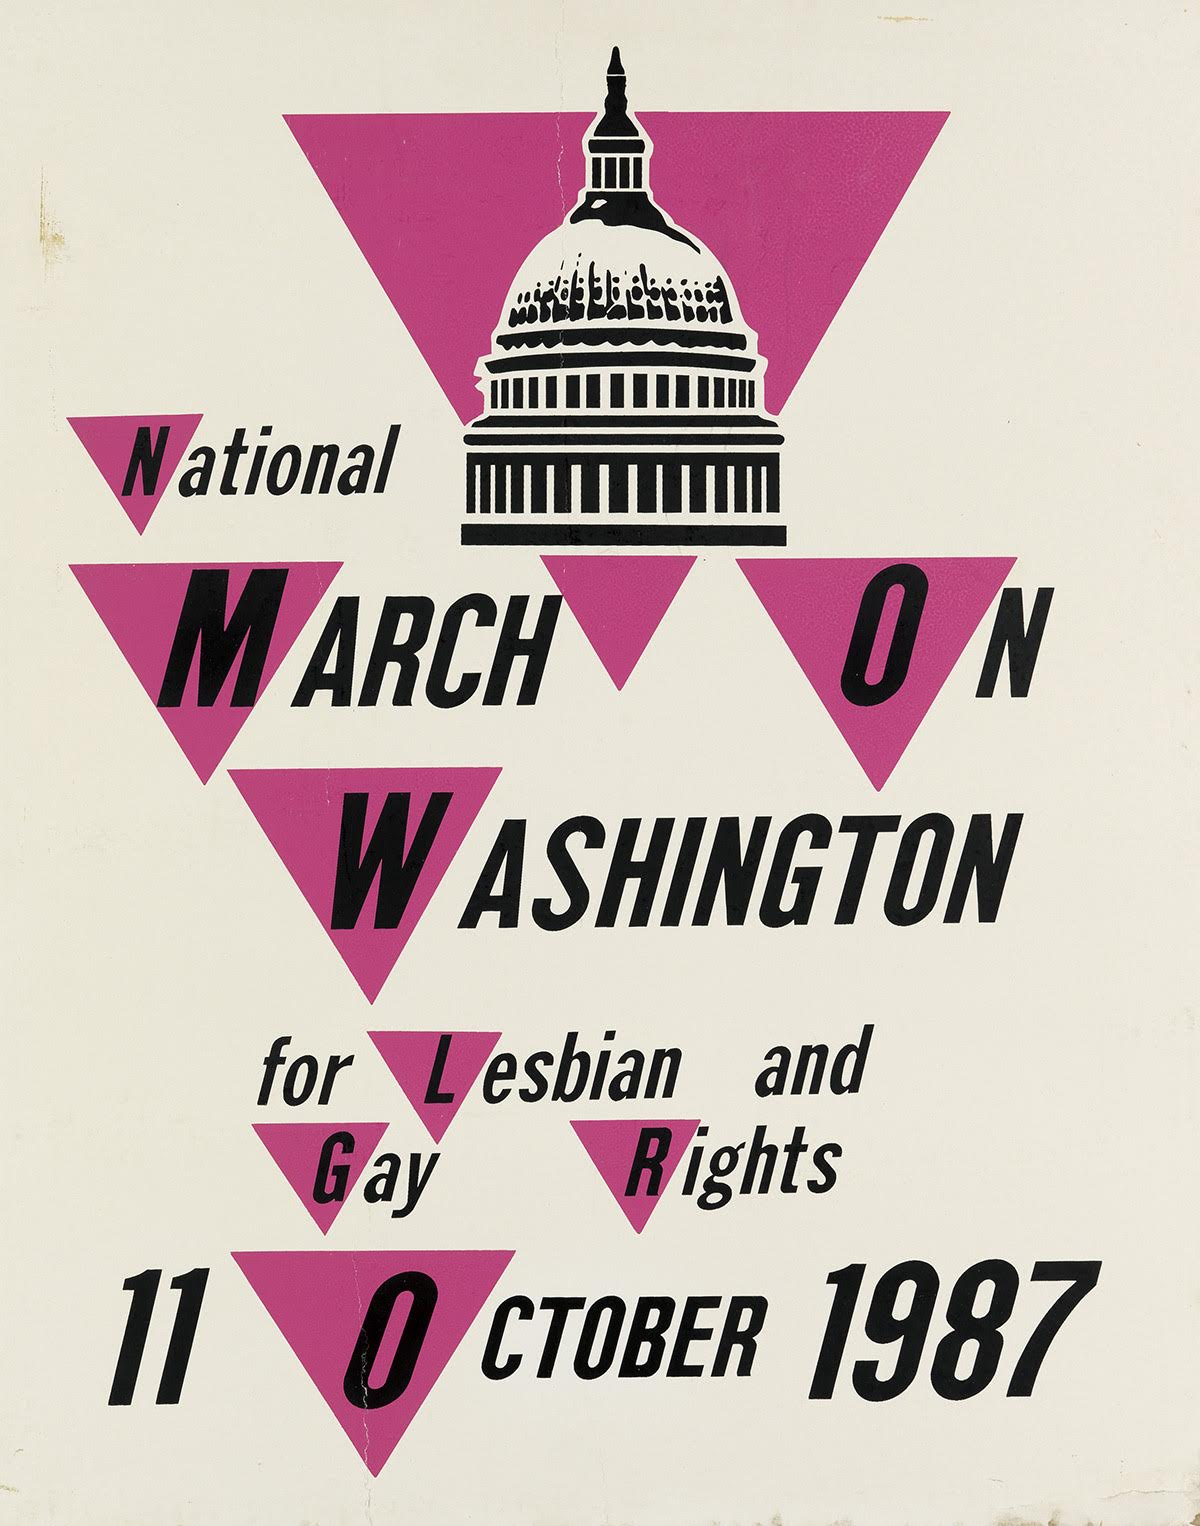 official poster for the National March on Washington for Lesbian Gay Rights on October 11, 1987